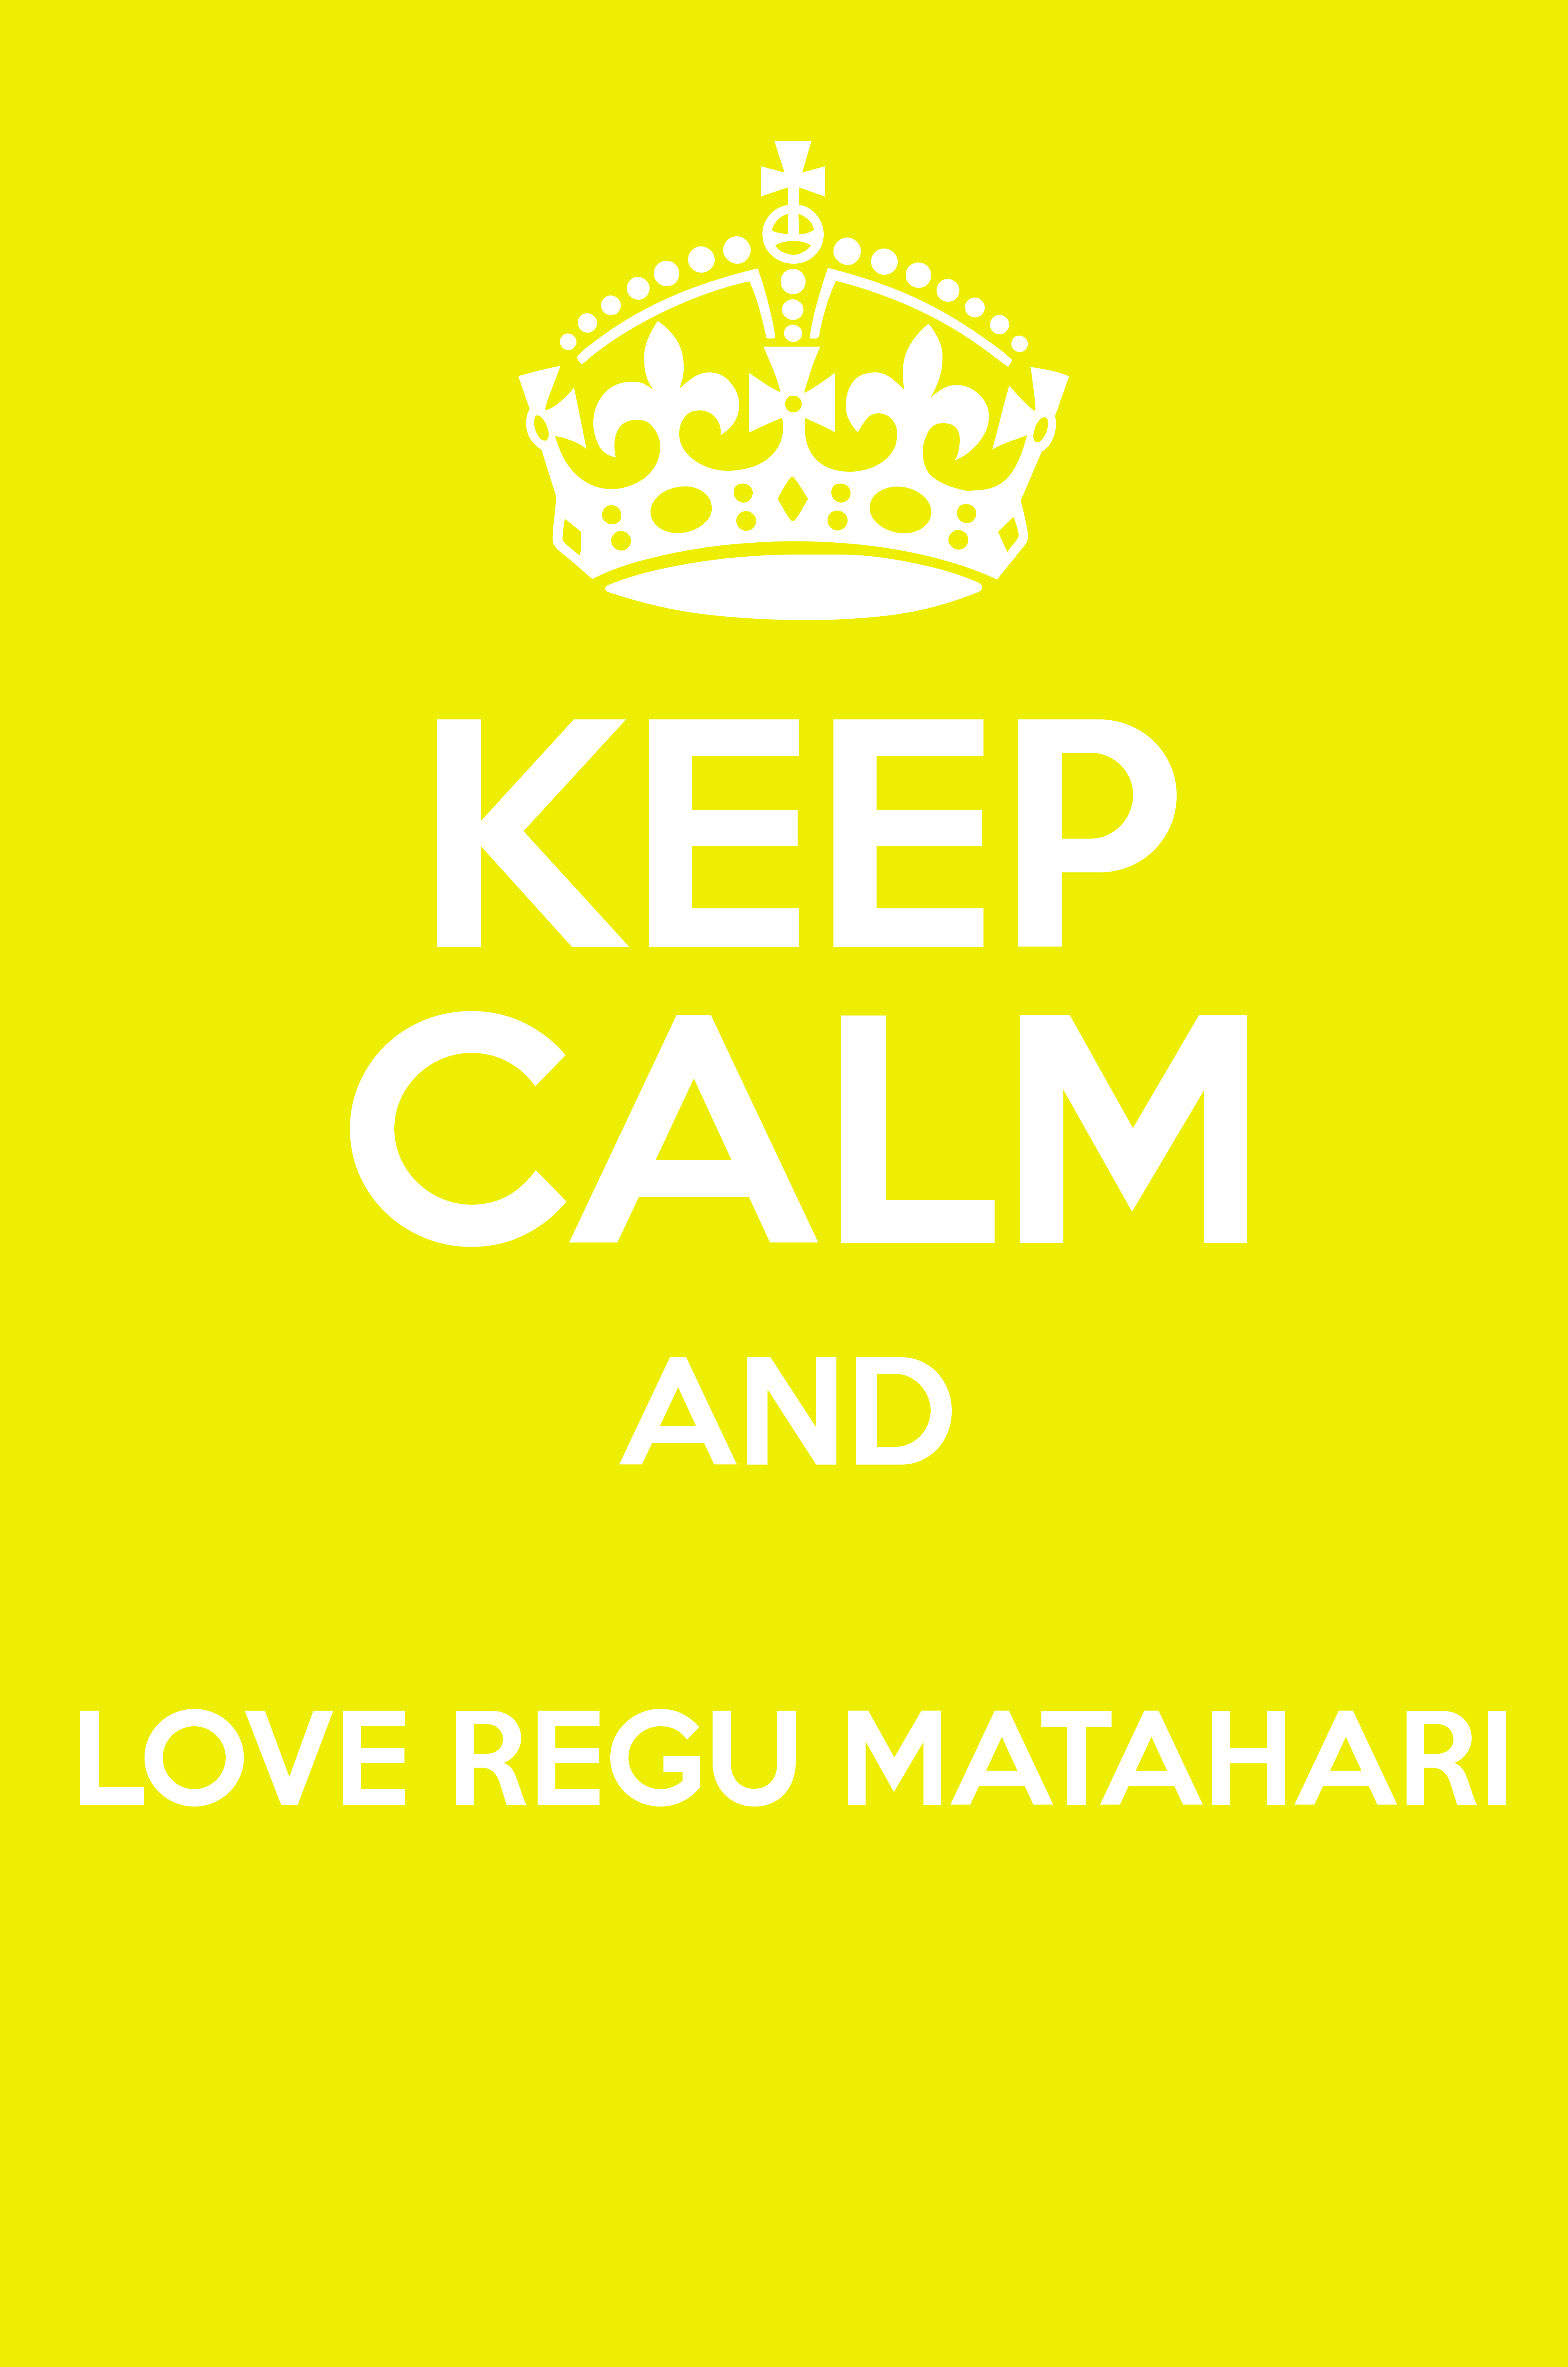 Keep Calm And Love Regu Matahari Keep Calm And Posters Generator